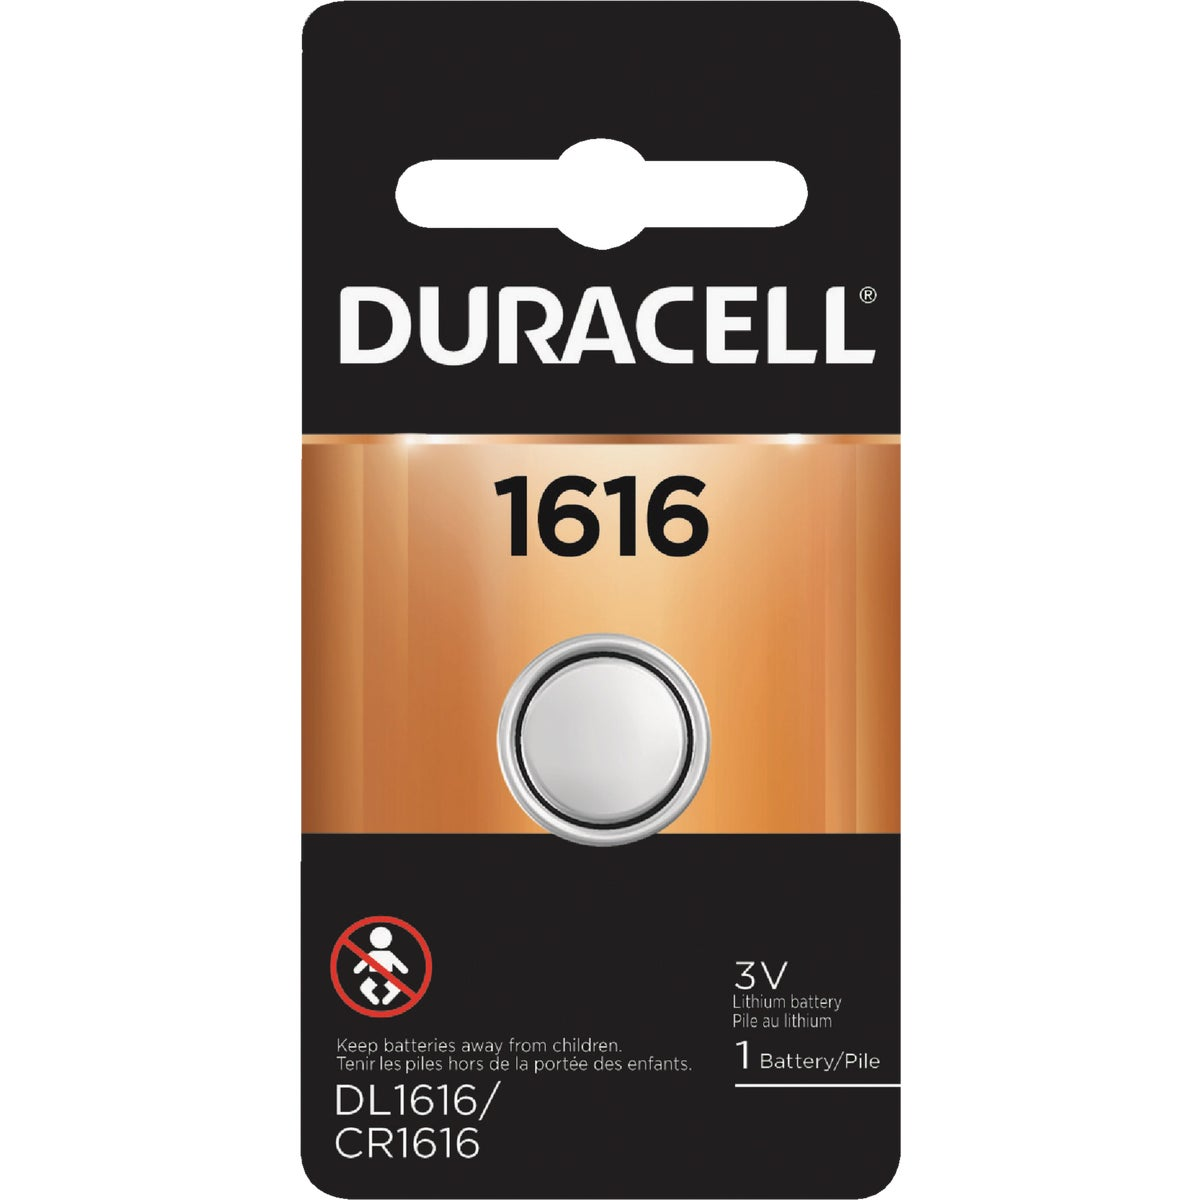 DL1616 3V SECUR BATTERY